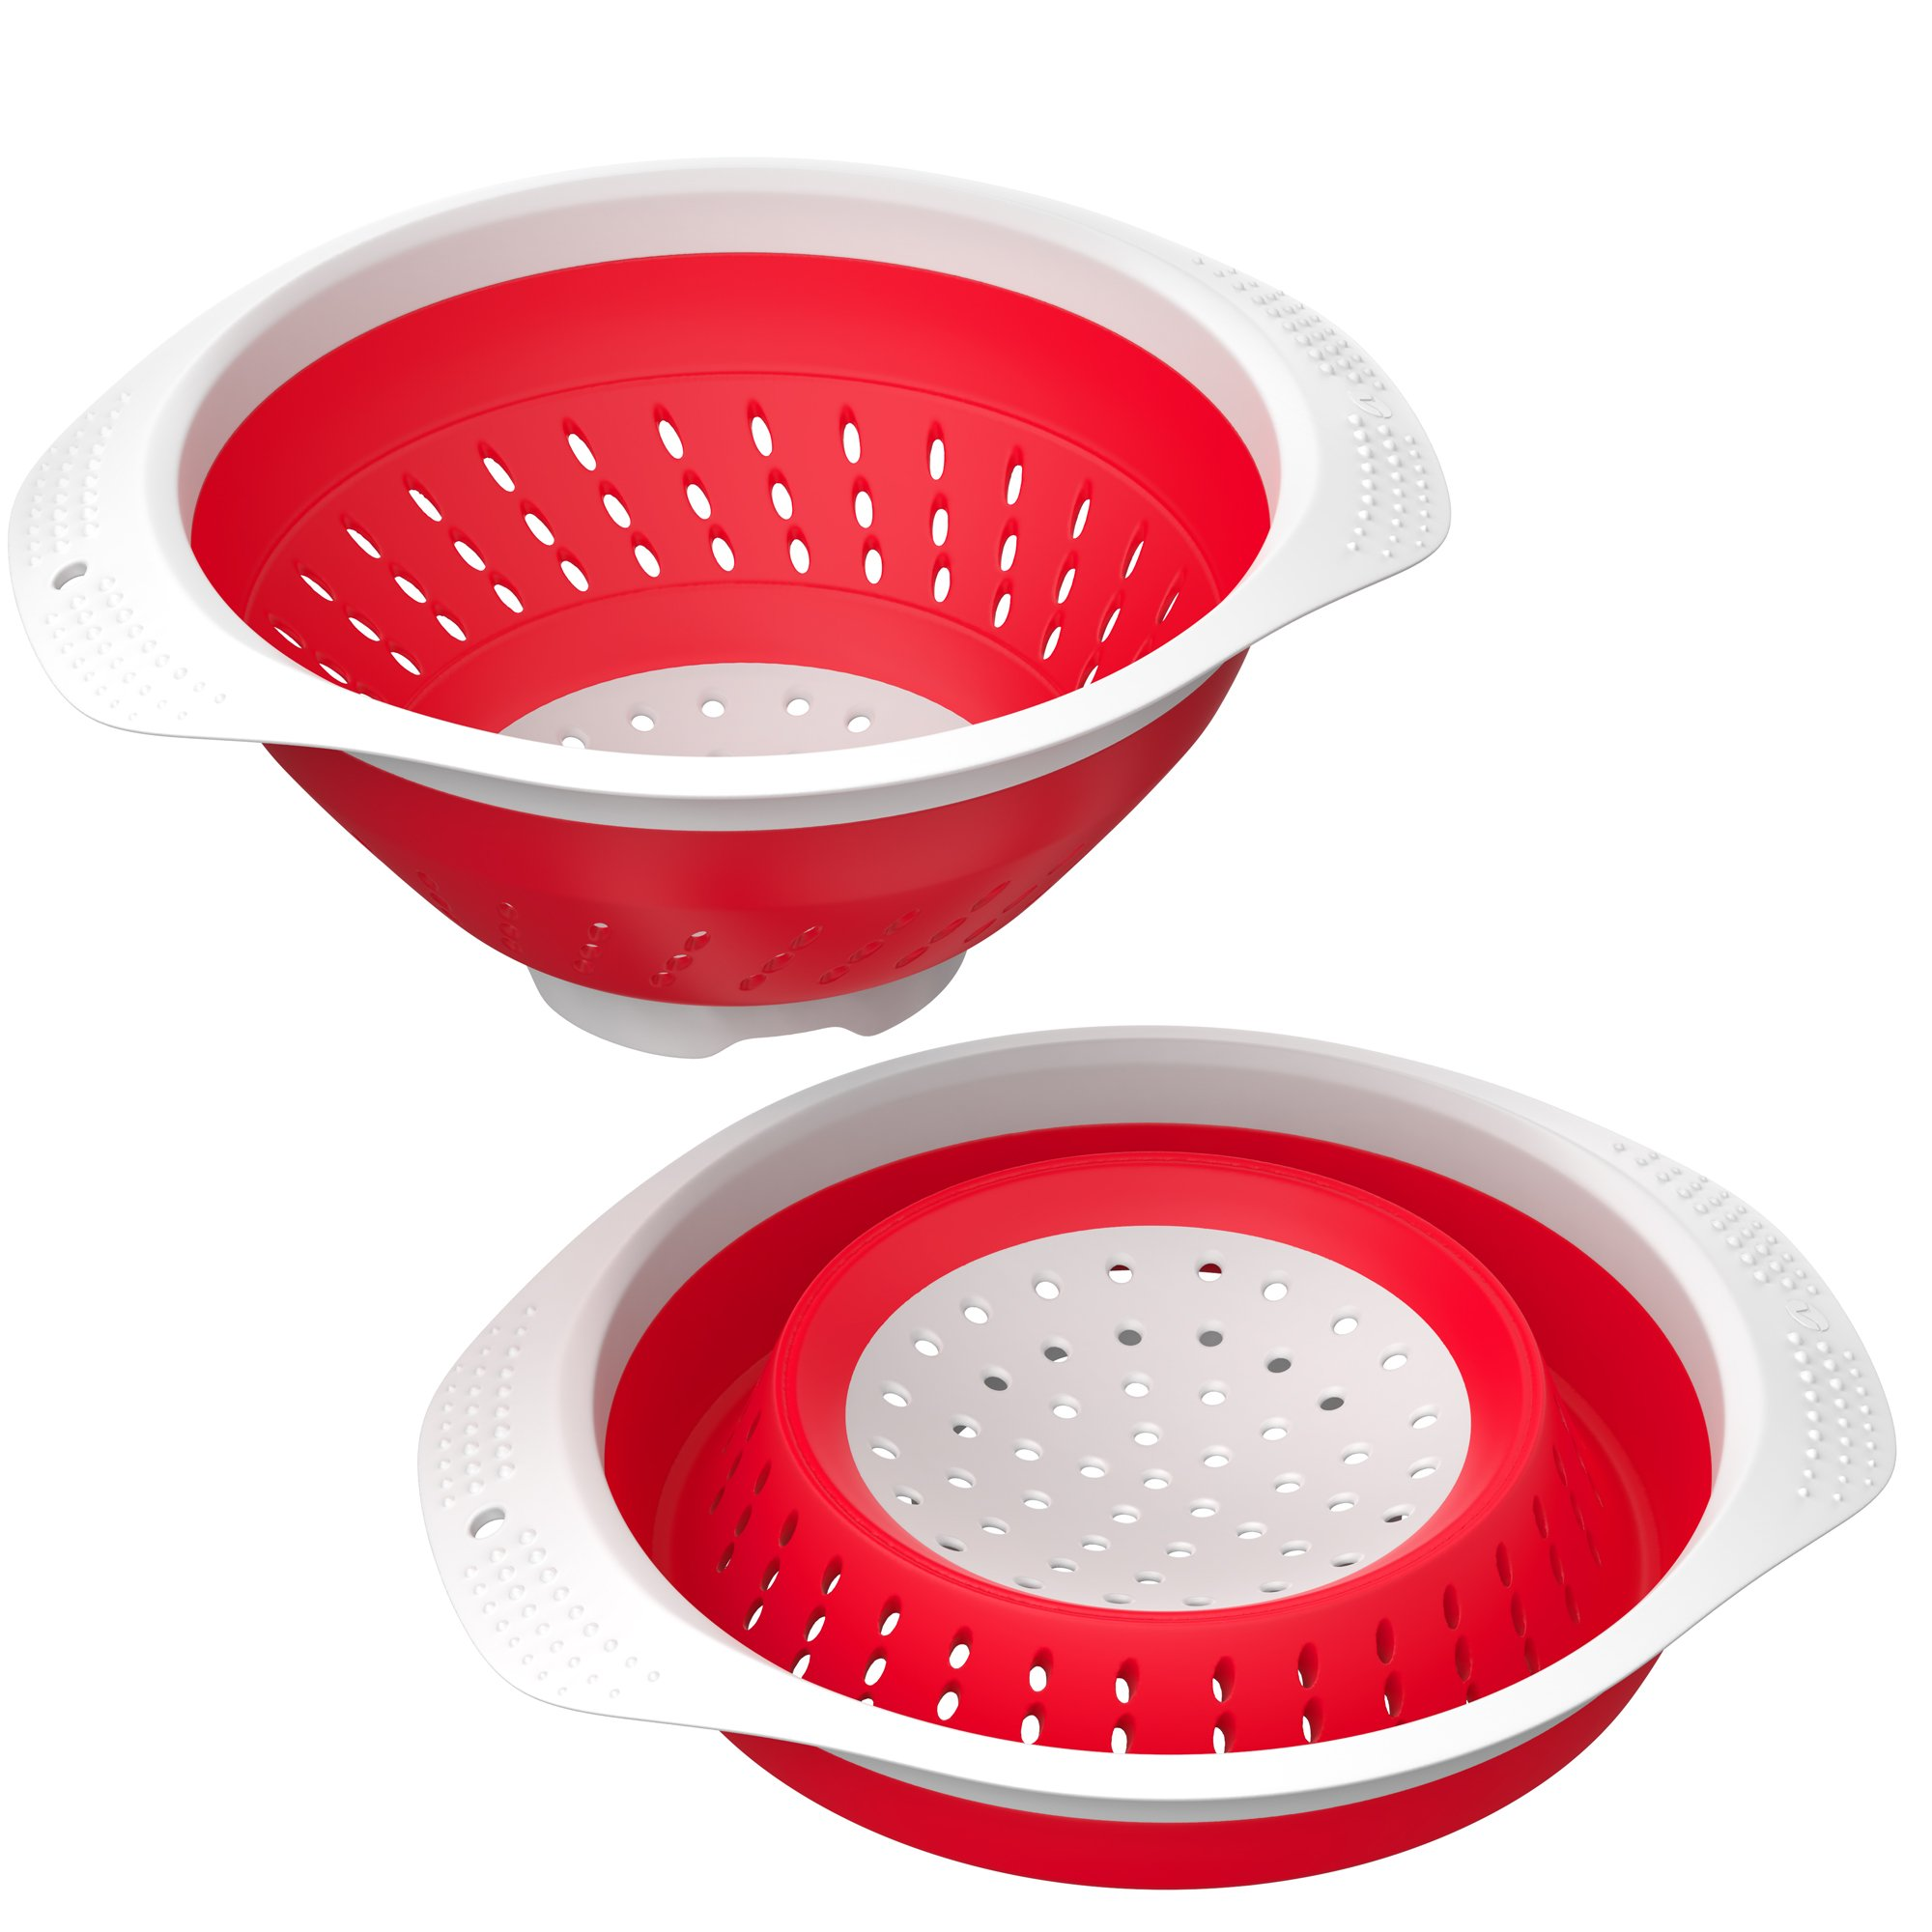 Vremi 5 Quart Collapsible Colander - BPA Free Silicone Food Strainer with Plastic Handles - Heavy Duty Foldable Heat Resistant Pasta and Veggies Kitchen Drainer Steam Basket - Dishwasher Safe - Red by Vremi